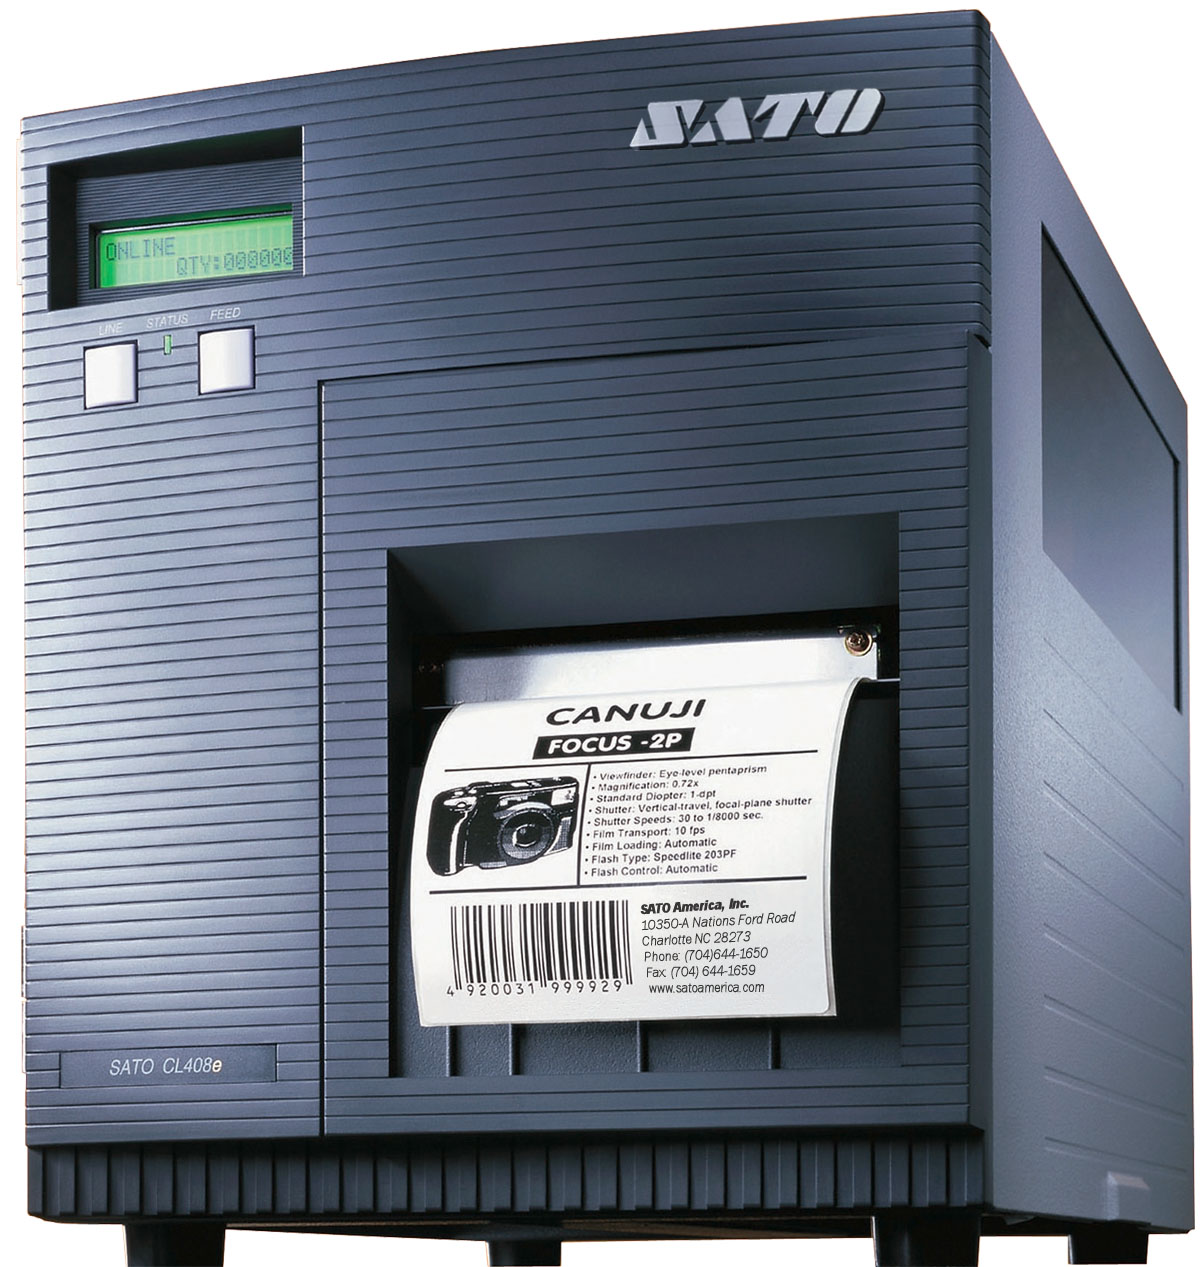 Sato CLe Series Thermal Printer